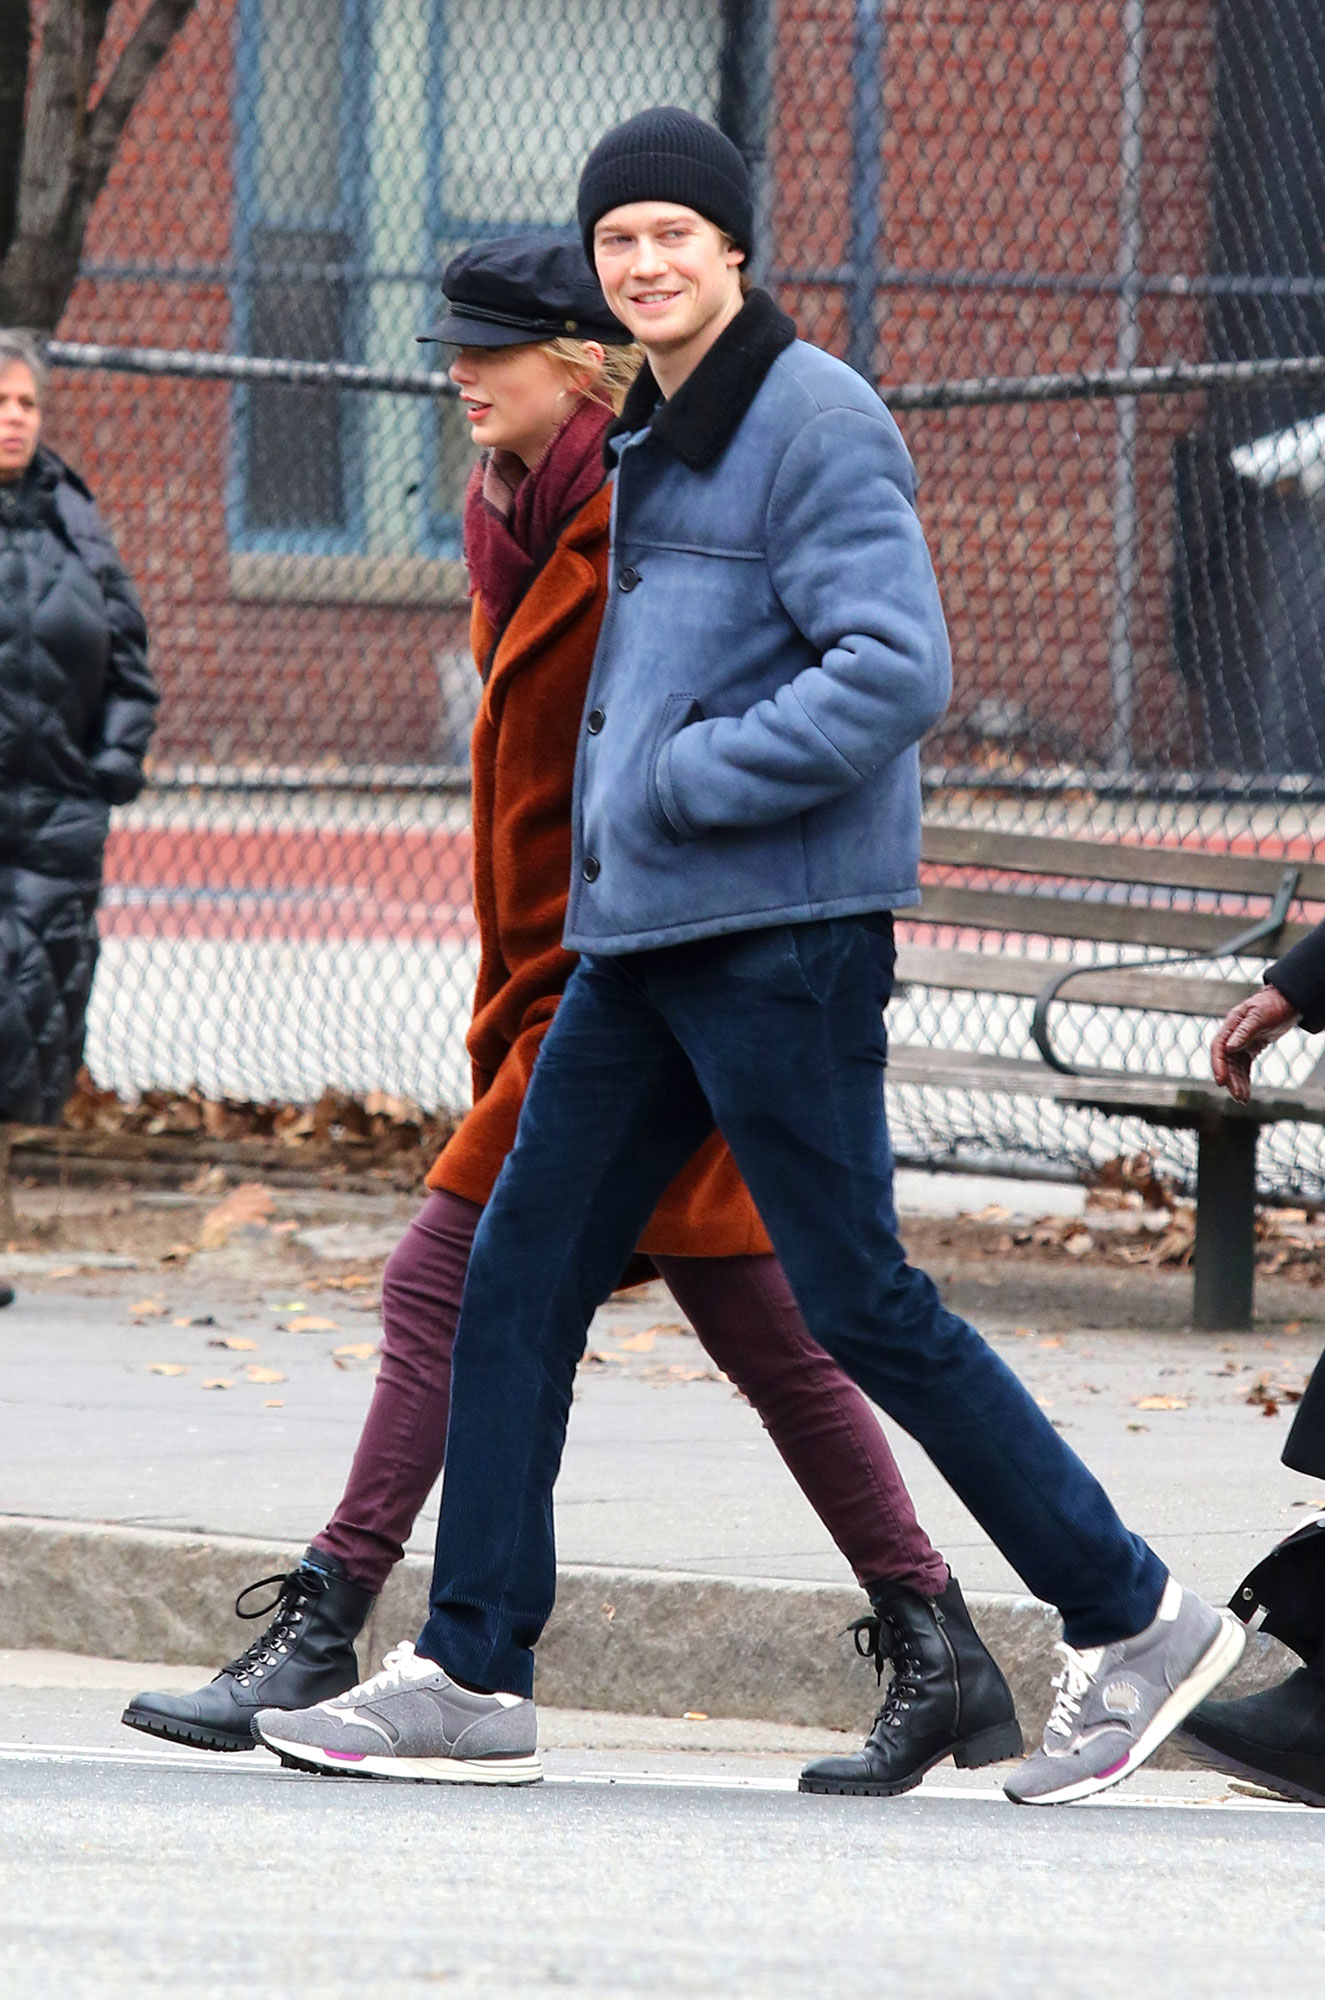 Taylor Swift and Joe Alwyn: A Timeline of Their 'Gorgeous' Relationship - The happy duo took a hand-in-hand stroll in New York City the day before New Year's Eve, with Swift in a burnt orange coat and a cap and the Mary Queen of Scots actor in a blue shearling jacket, jeans and a beanie.